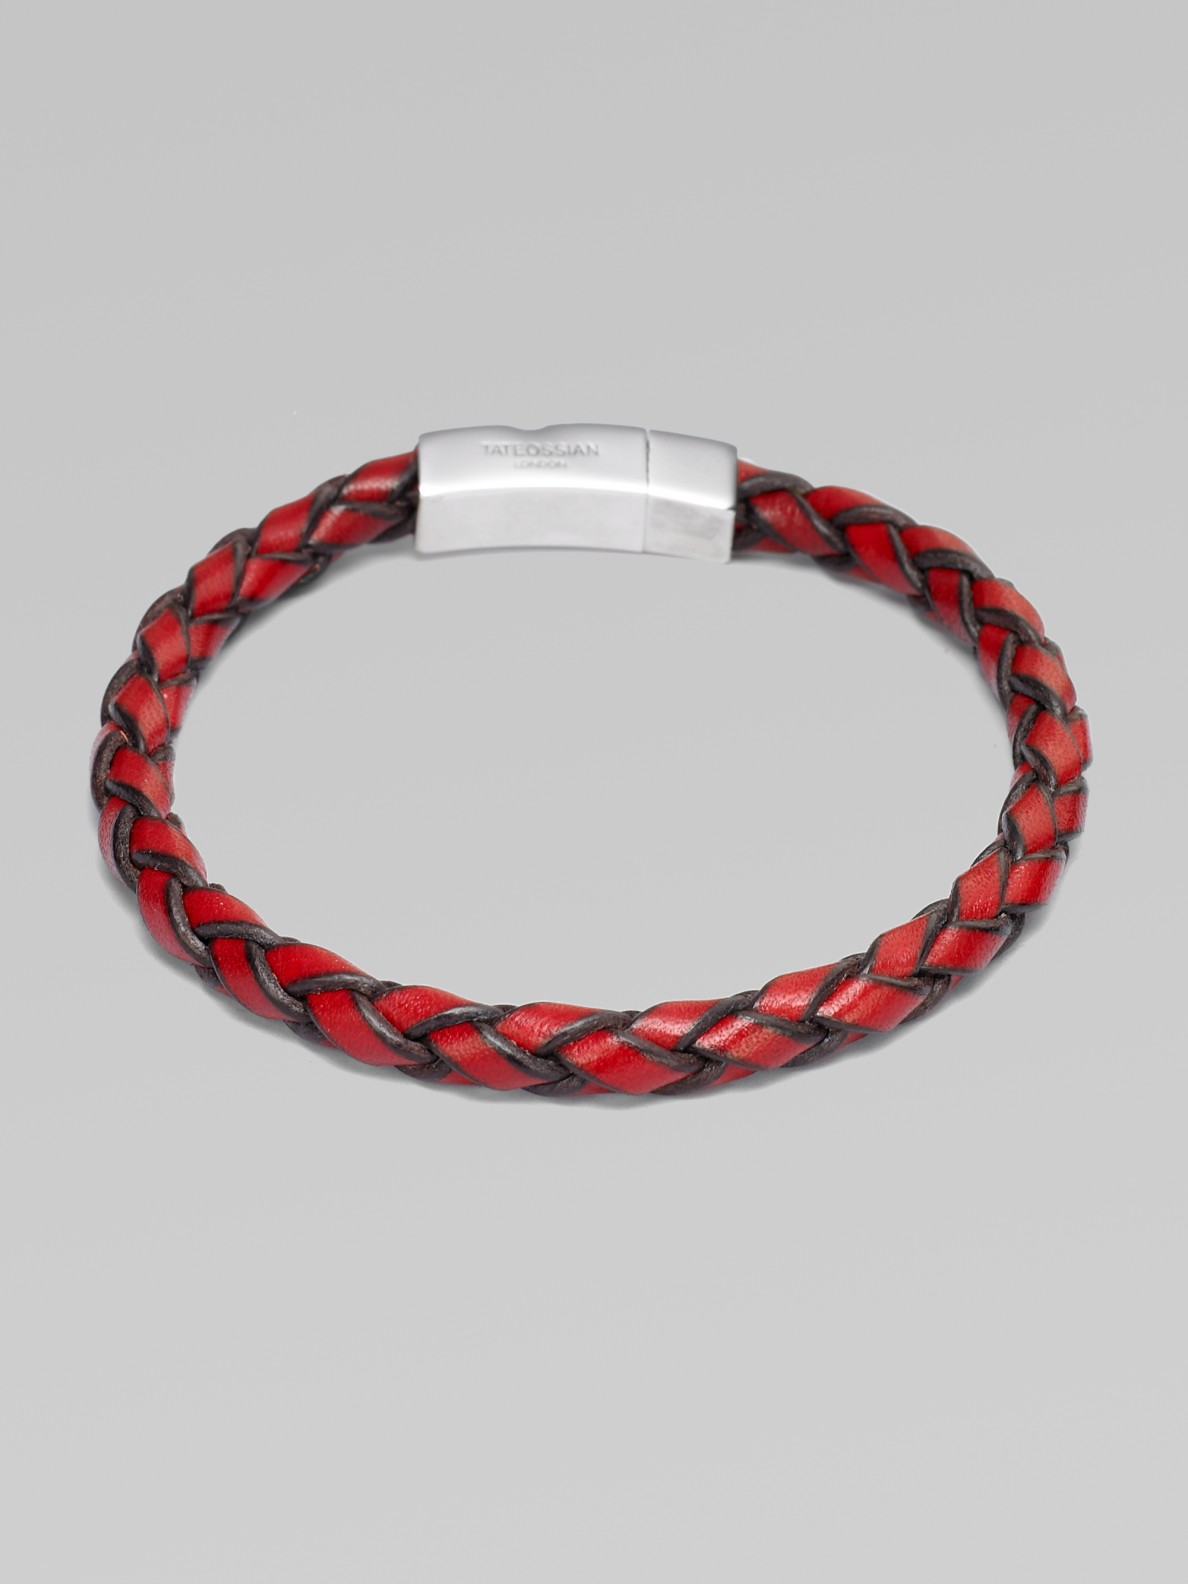 Tateossian Hand Braided Leather Bracelet In Red For Men Lyst